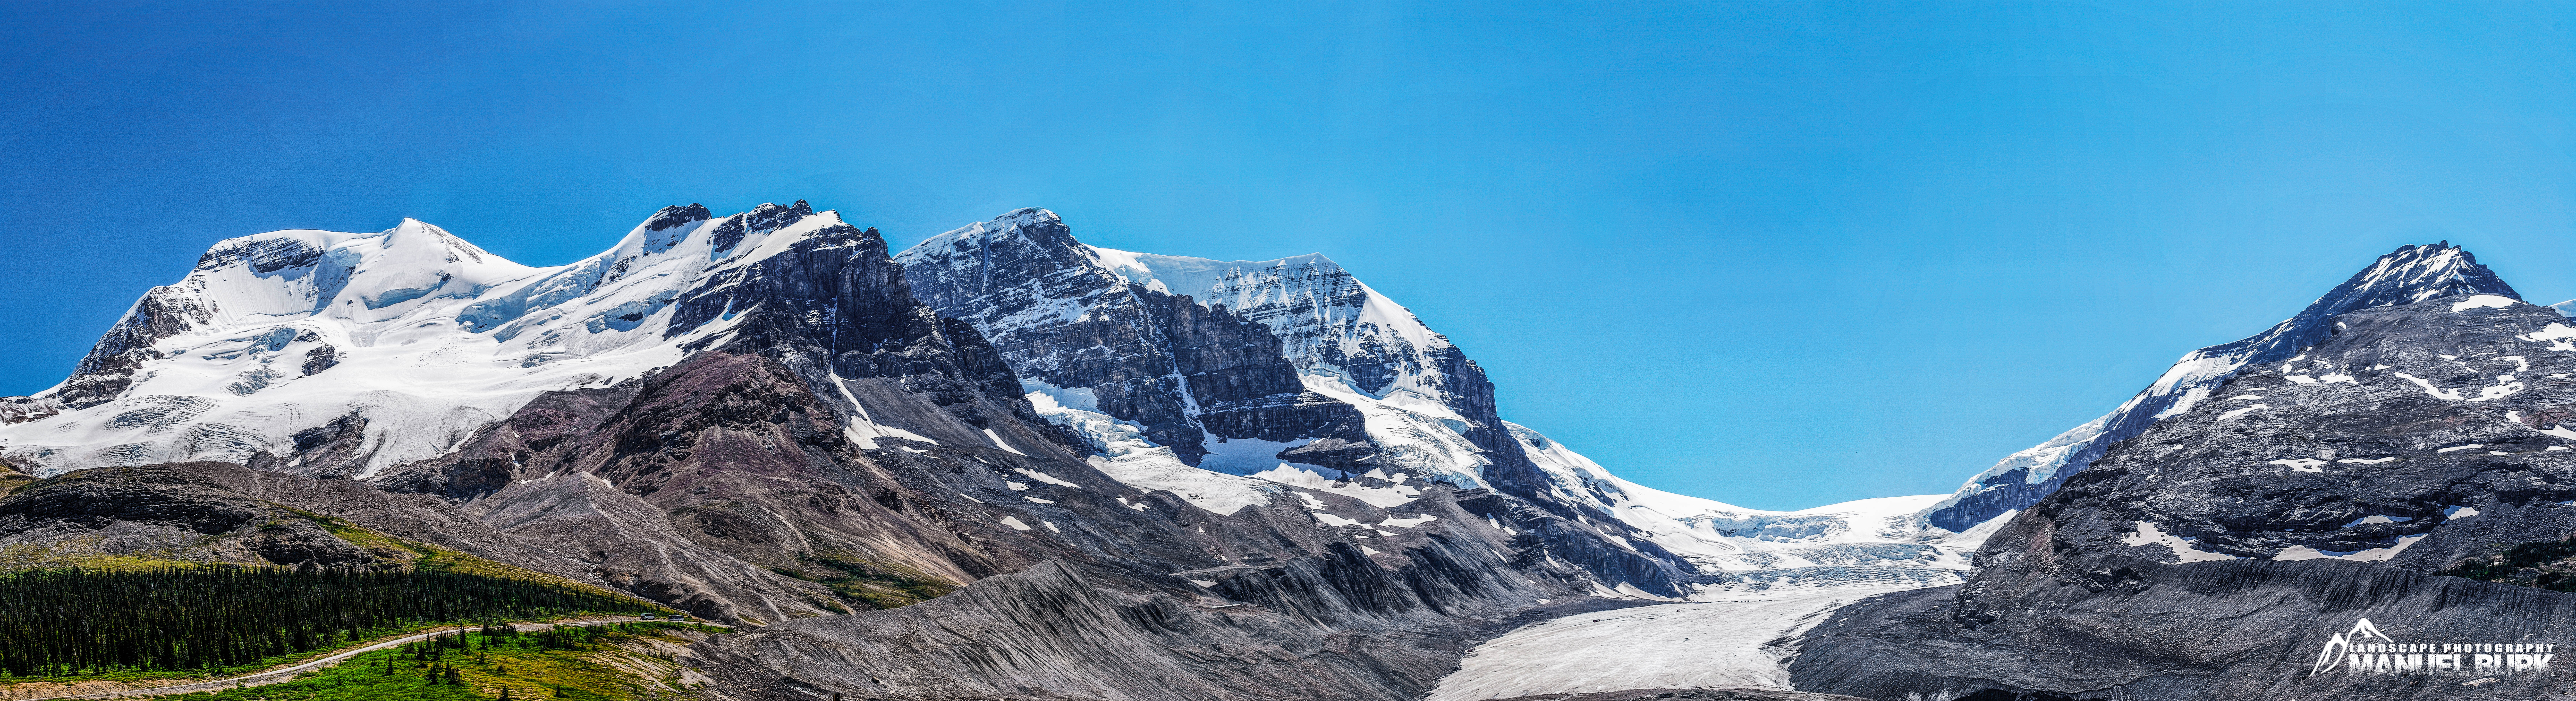 Columbia Icefield-Icefields Parkway